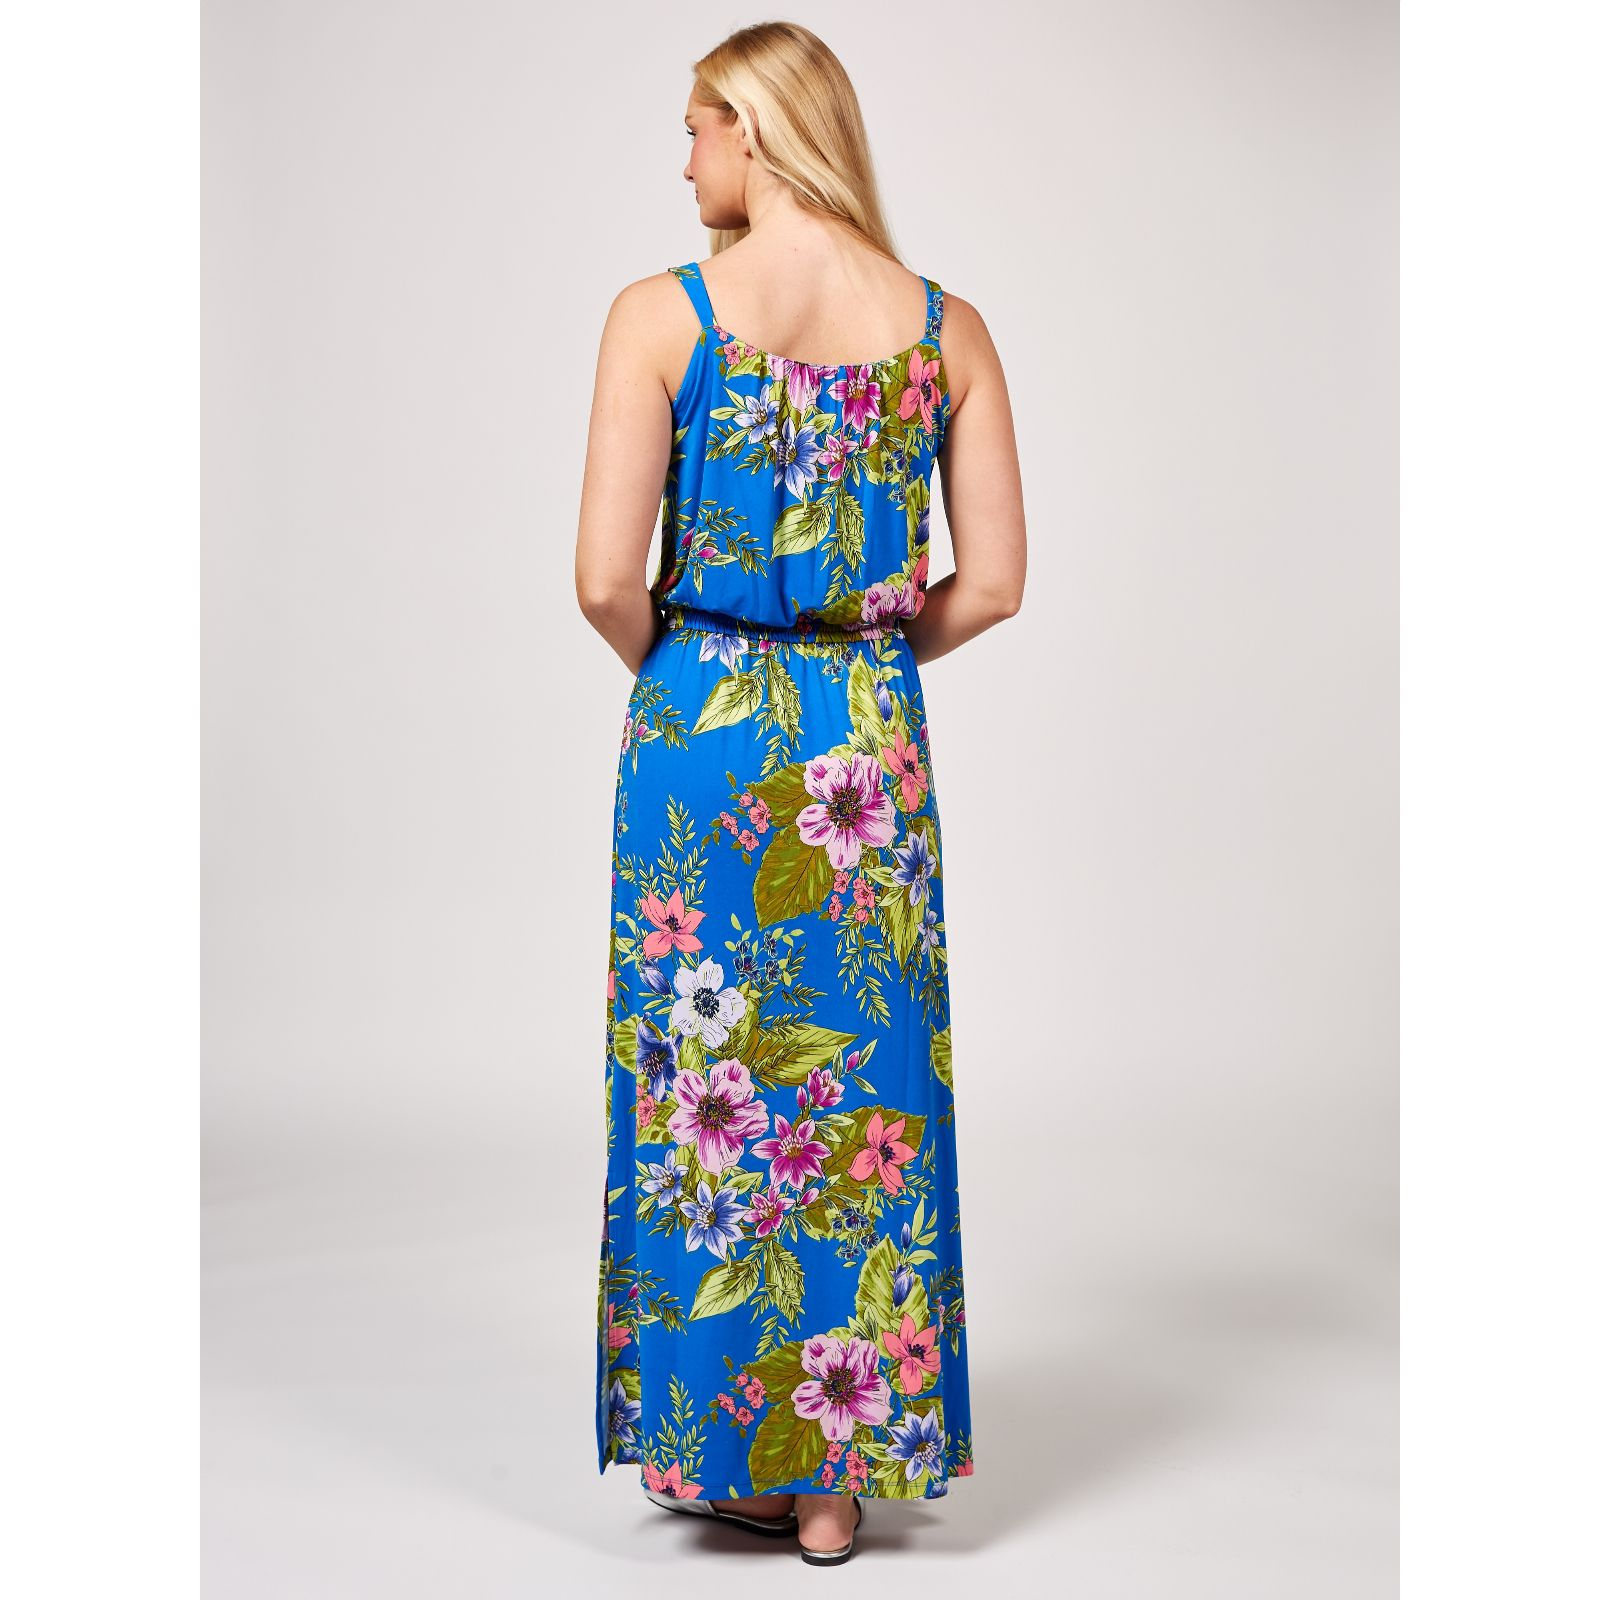 3cca9ba65 Printed Liquid Knit Maxi Dress by Susan Graver - QVC UK